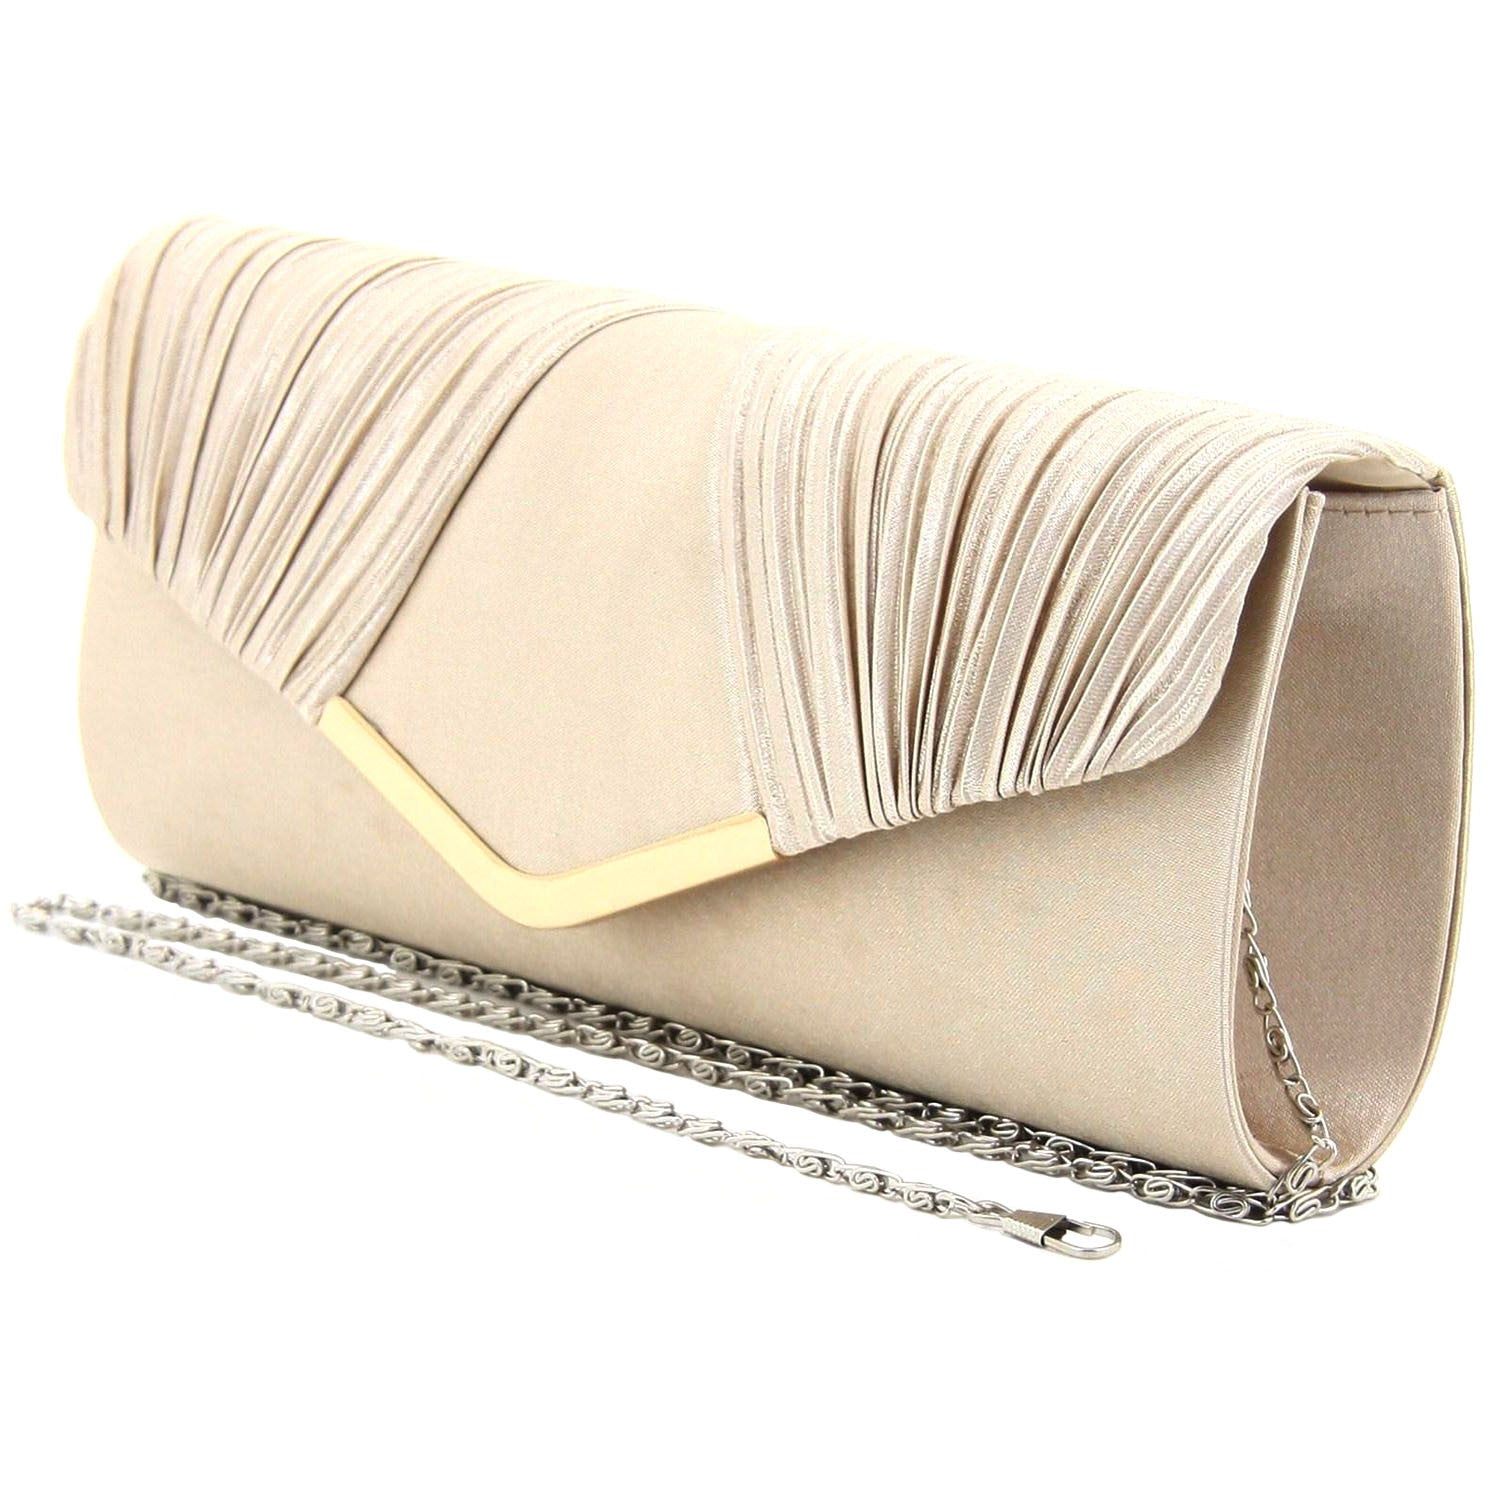 C16JL696GO Nightfall Pleated Clutch (Gold)